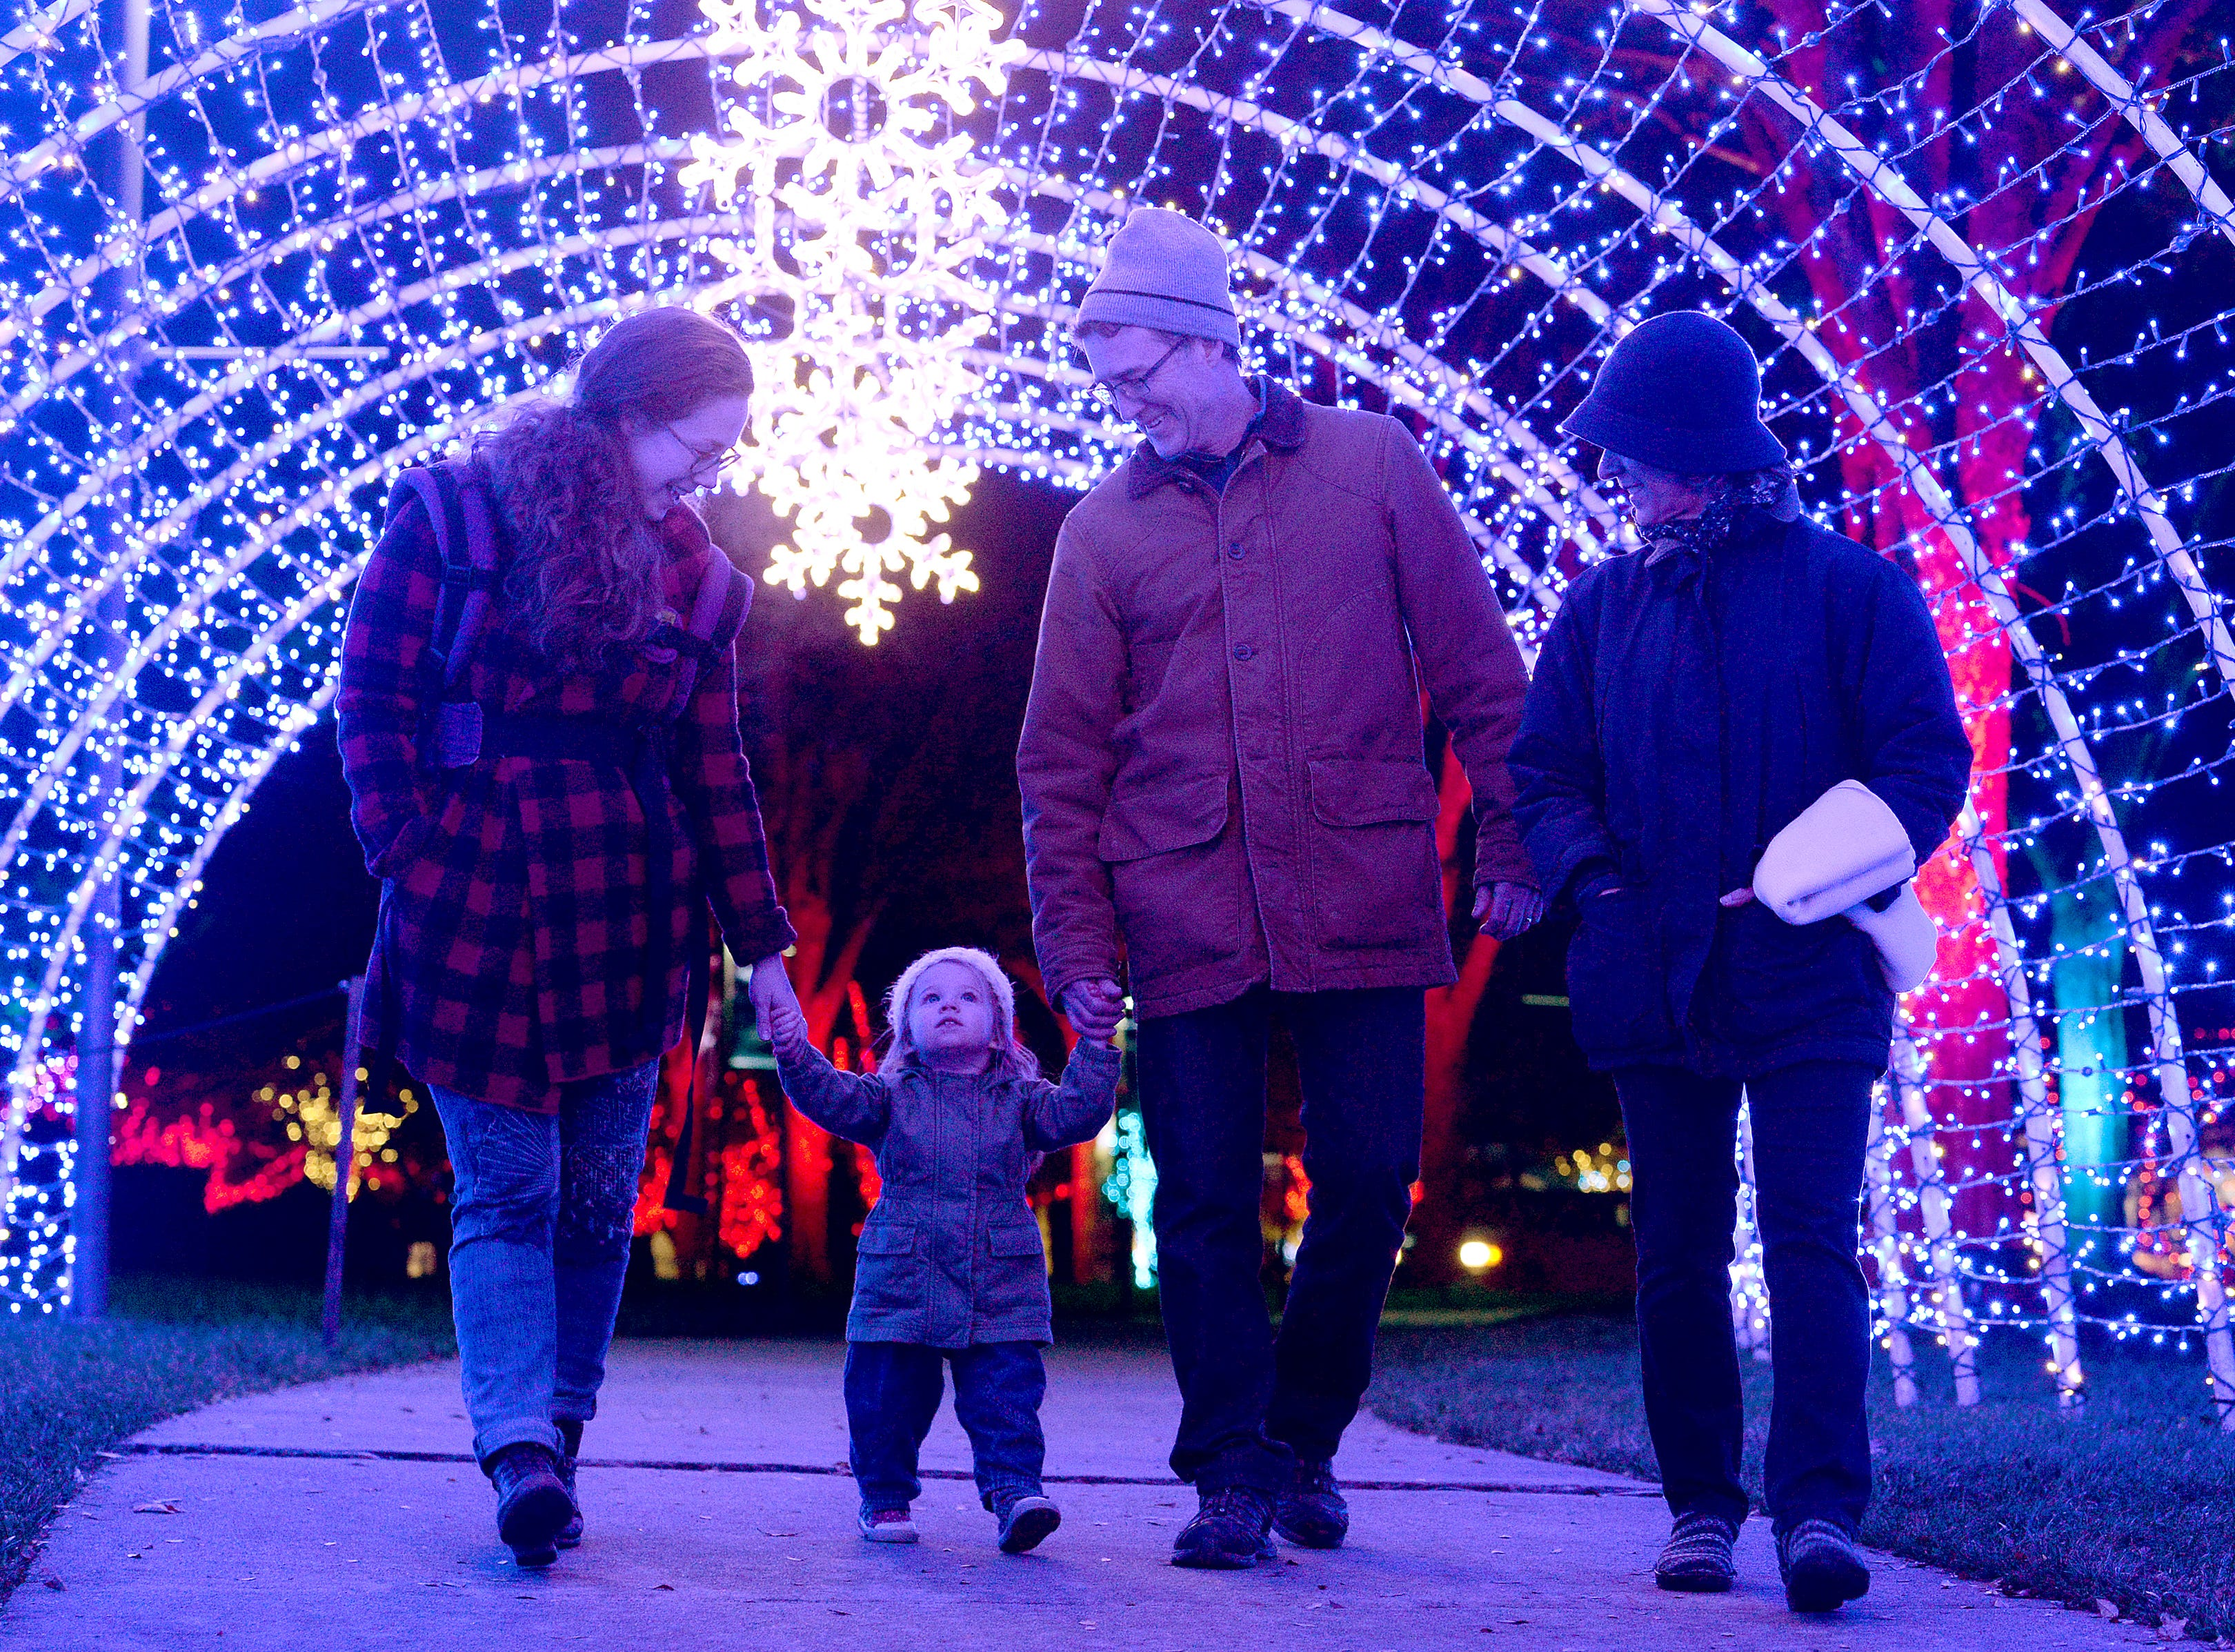 River Oliver, 18 months, walks through a tunnel of lights with her mother, Jacqueline and grandparents, Patrick and Gale McNally during the Winter Lights show at the North Carolina Arboretum on Nov. 16, 2018. The show runs nightly through the end of the year.